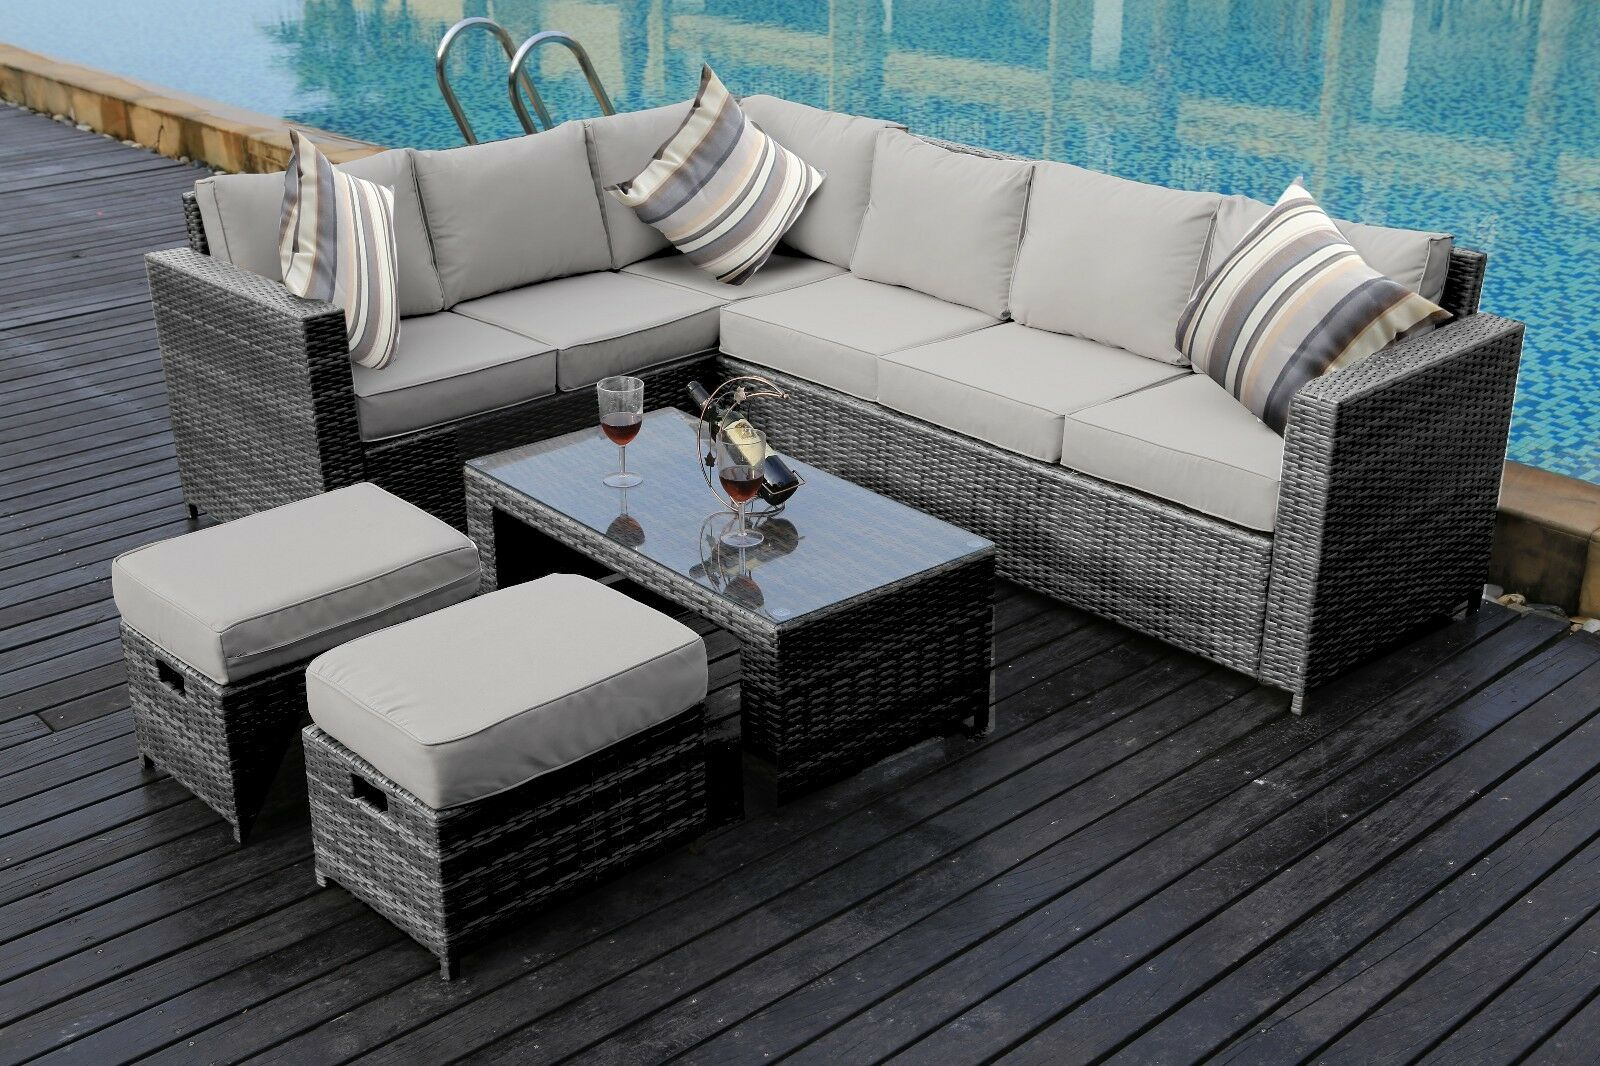 new conservatory 8 seater rattan corner sofa set garden furniture grey picclick uk. Black Bedroom Furniture Sets. Home Design Ideas